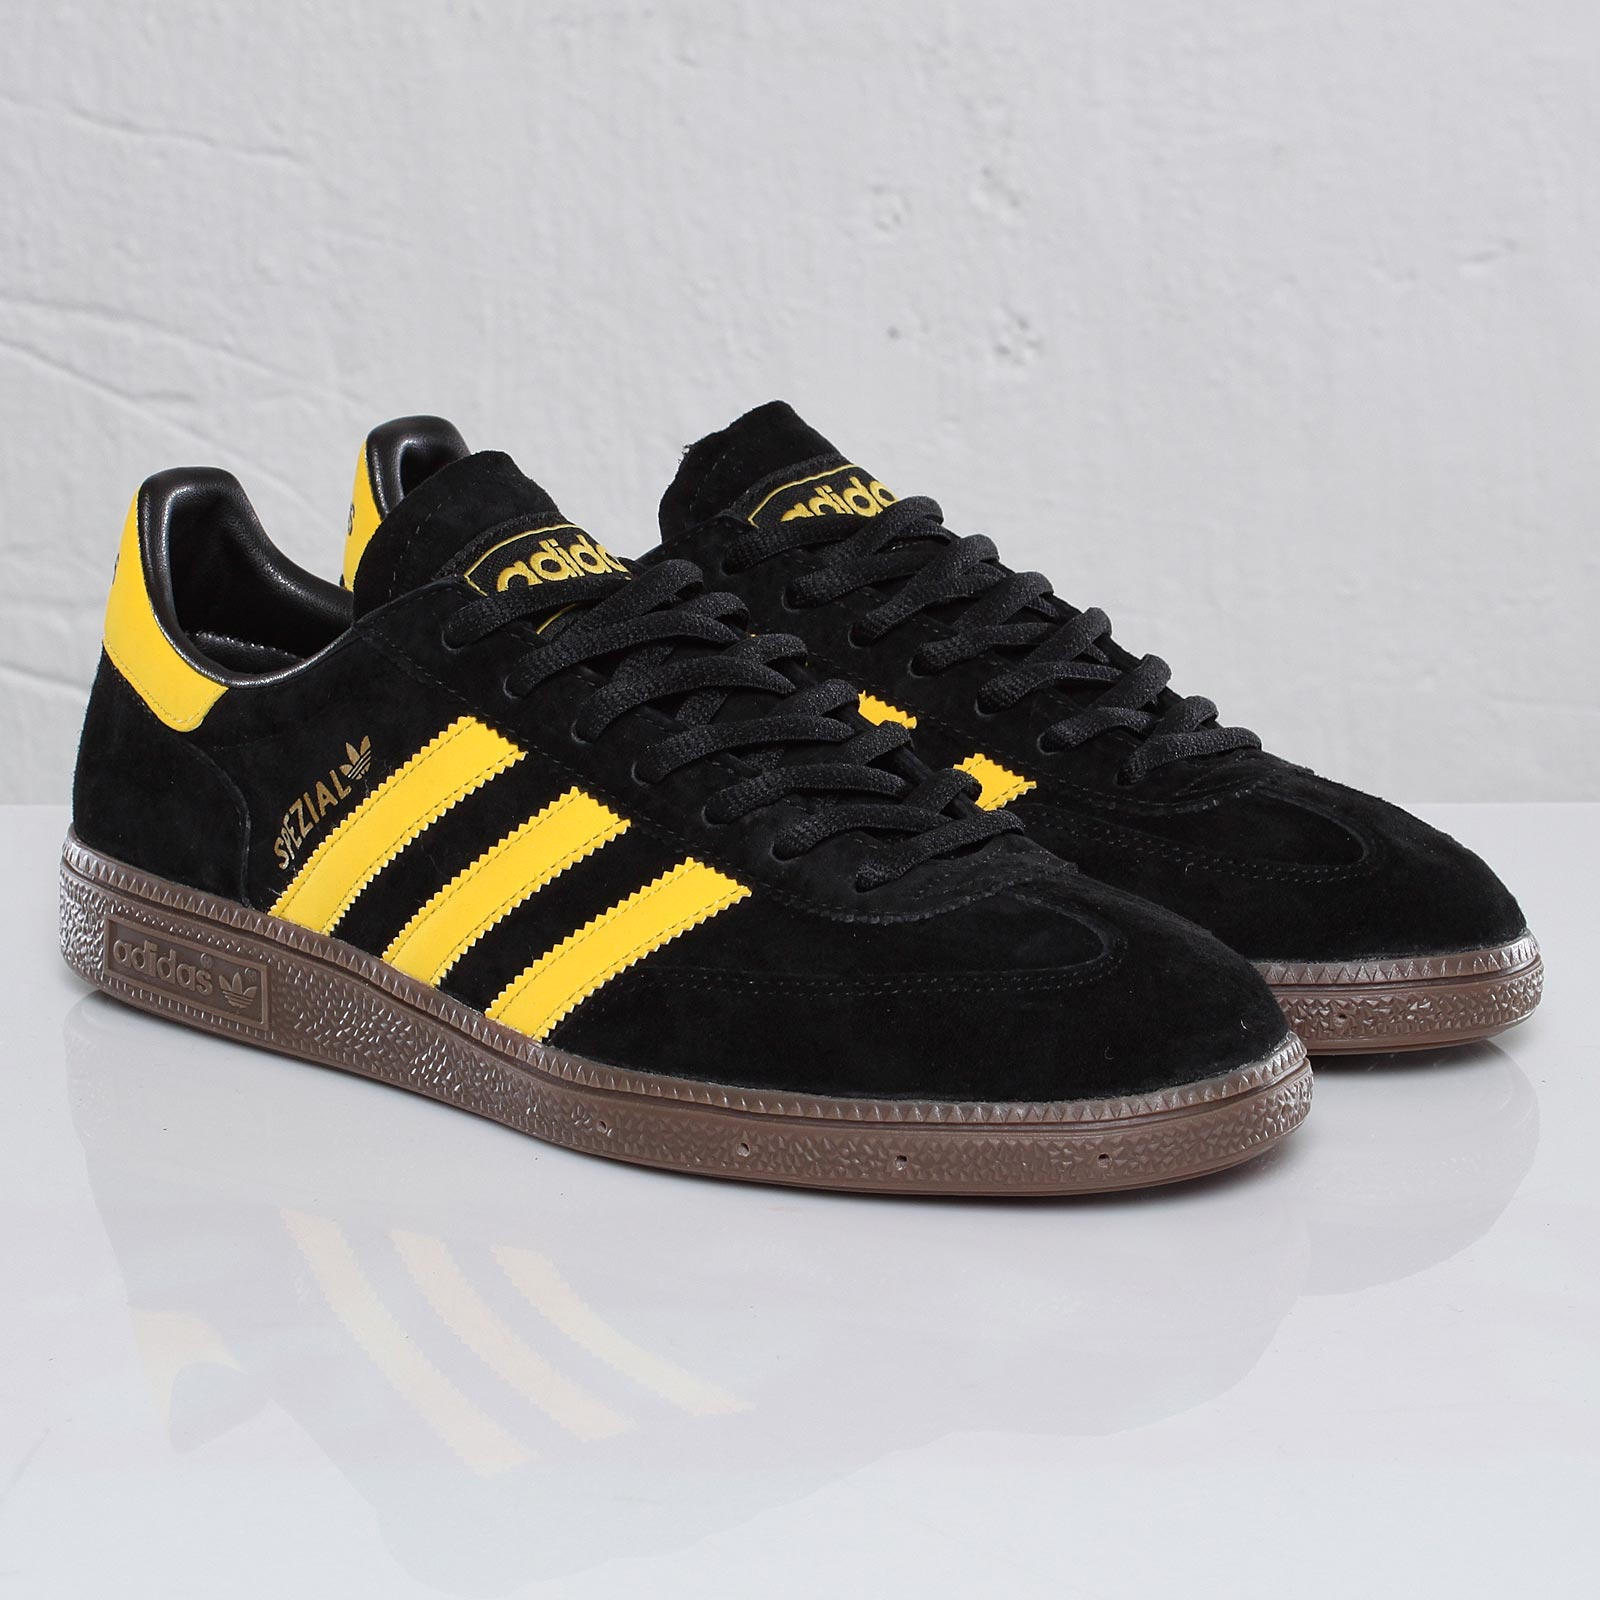 adidas spezial black and yellow Online